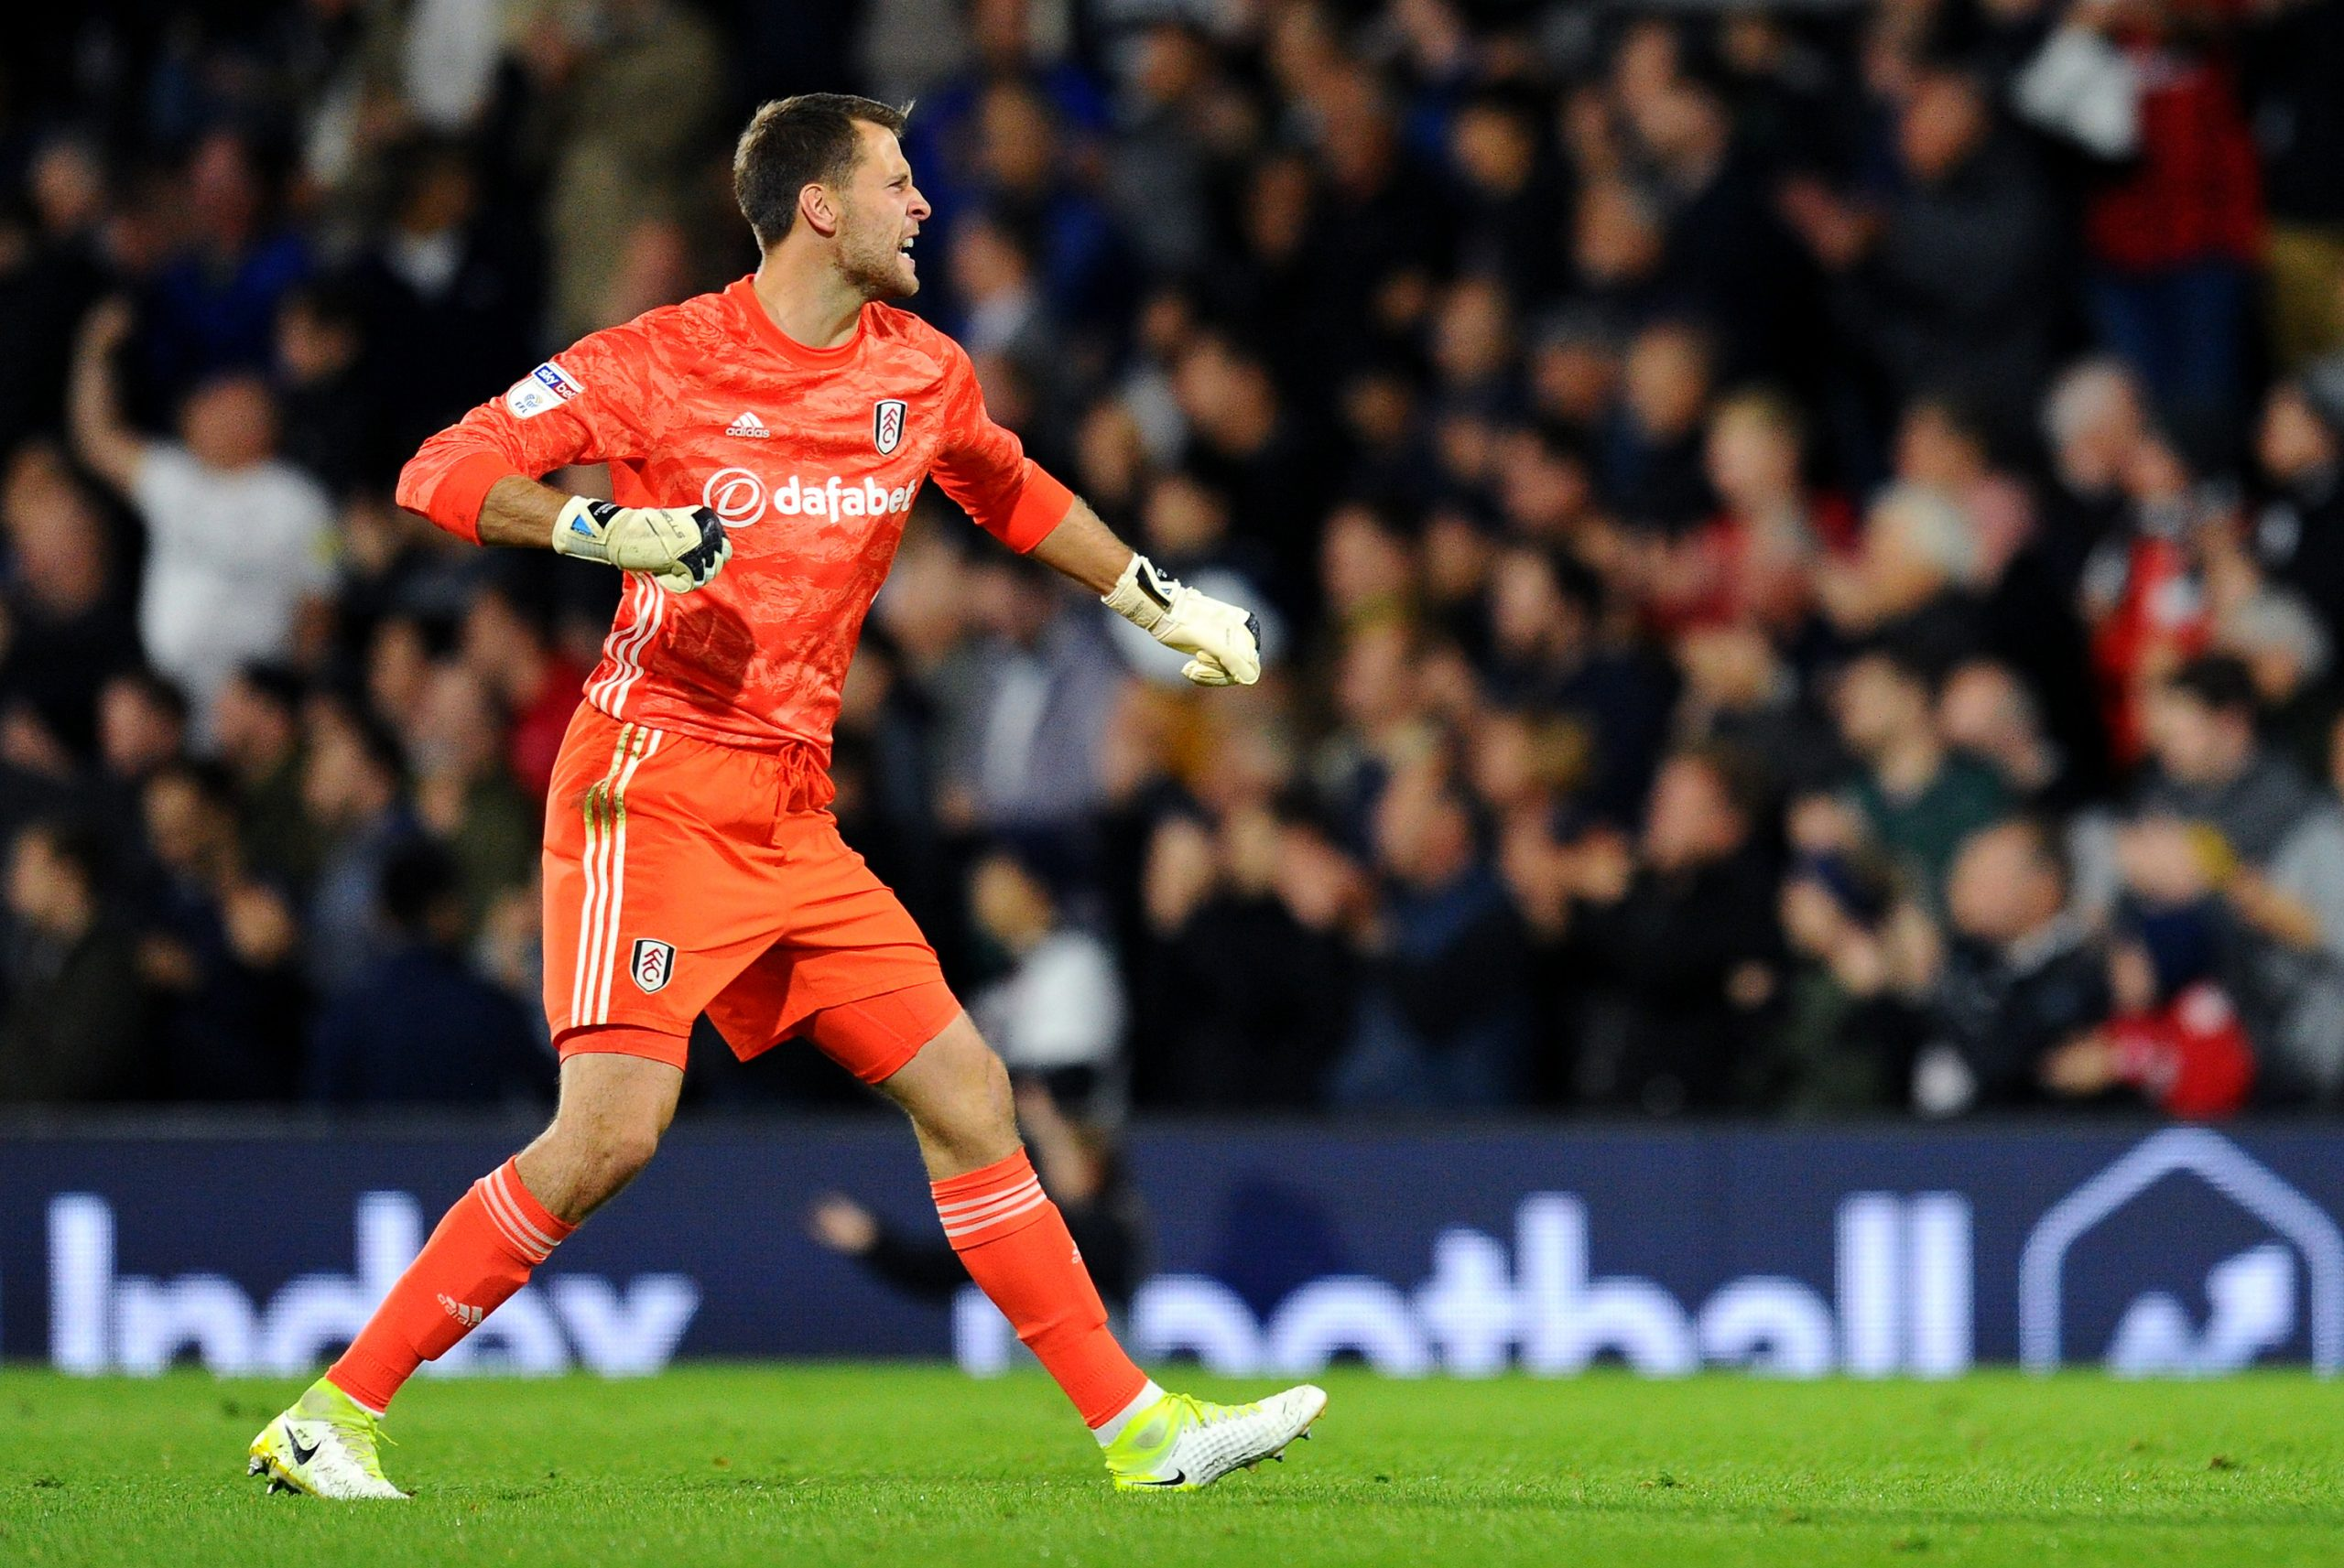 Marcus Bettinelli in action against Wigan Athletic (Getty Images)